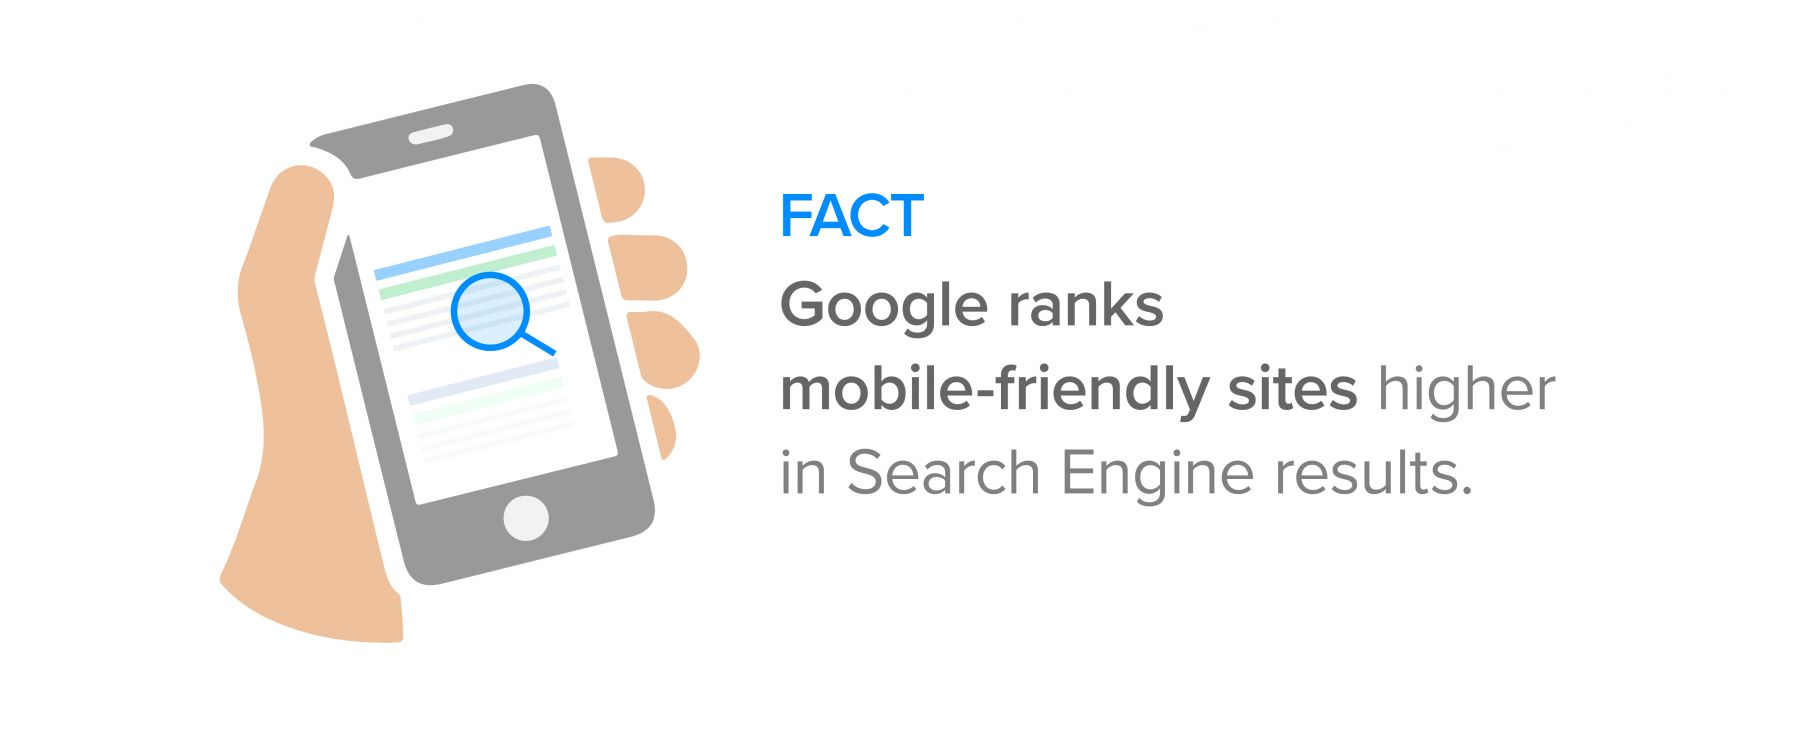 Google ranks mobile-friendly sites higher in Search Engine results.